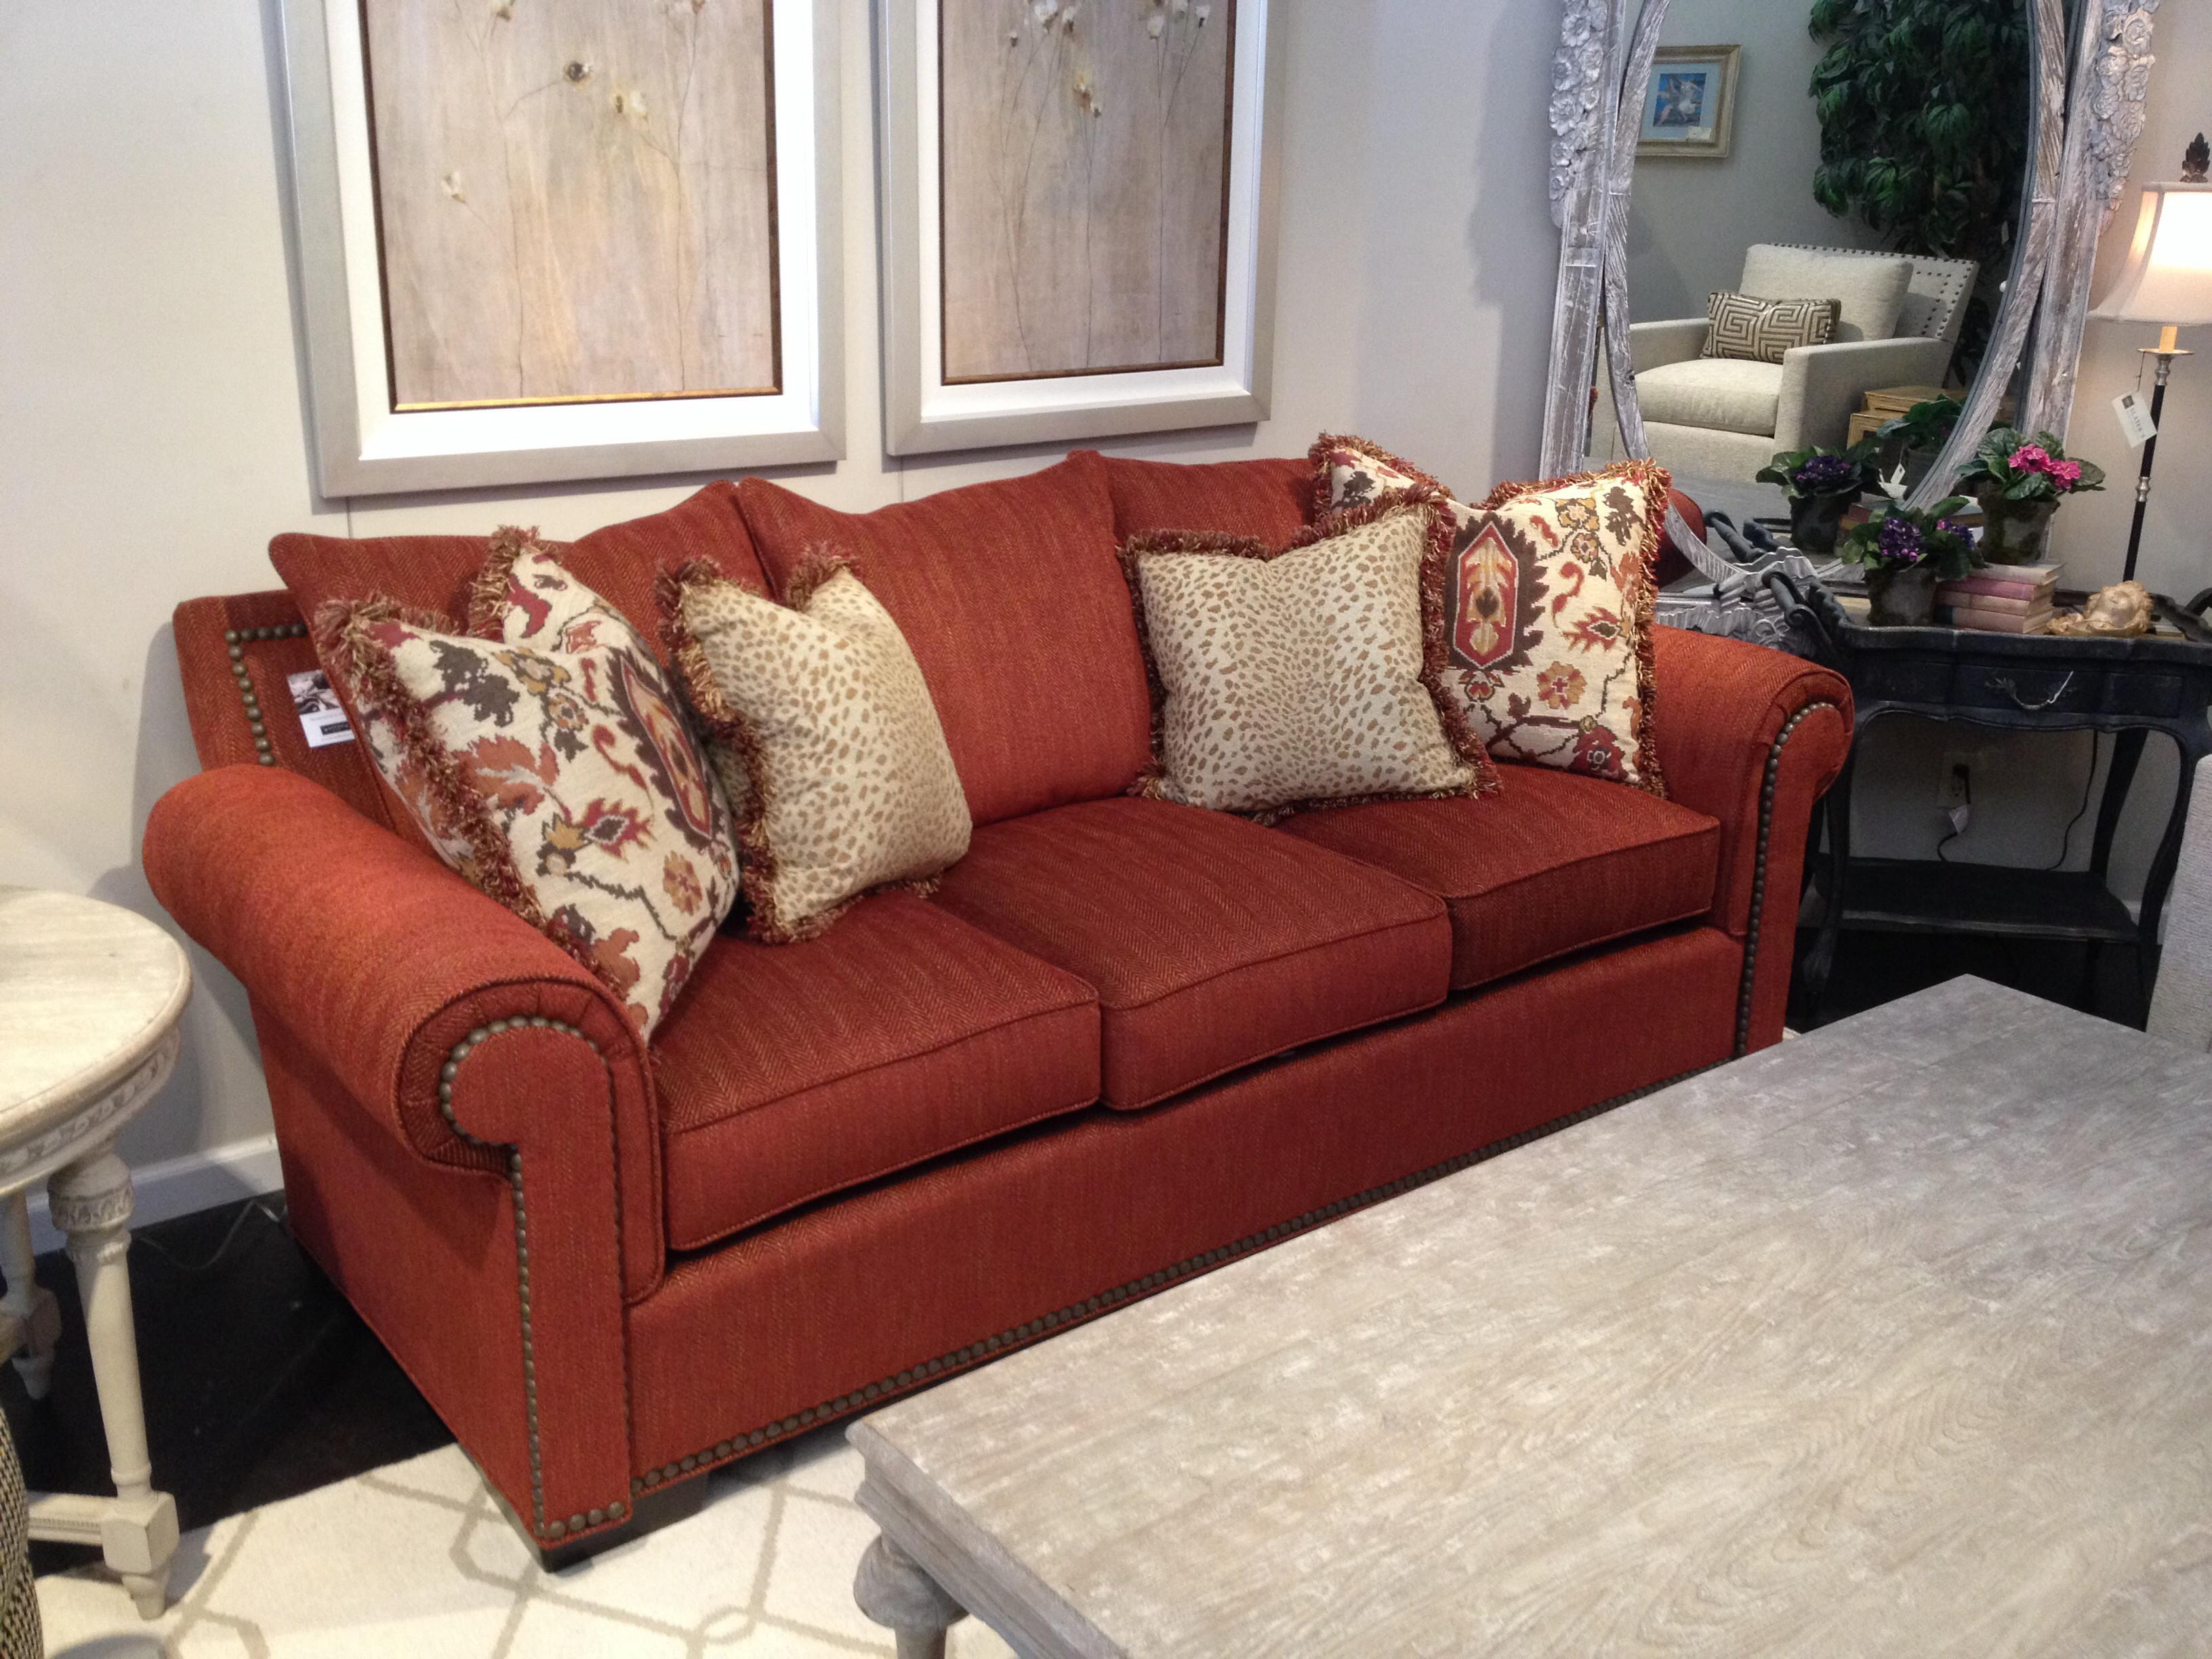 Fascinating Rust Colored Couch Awesome Room Decor